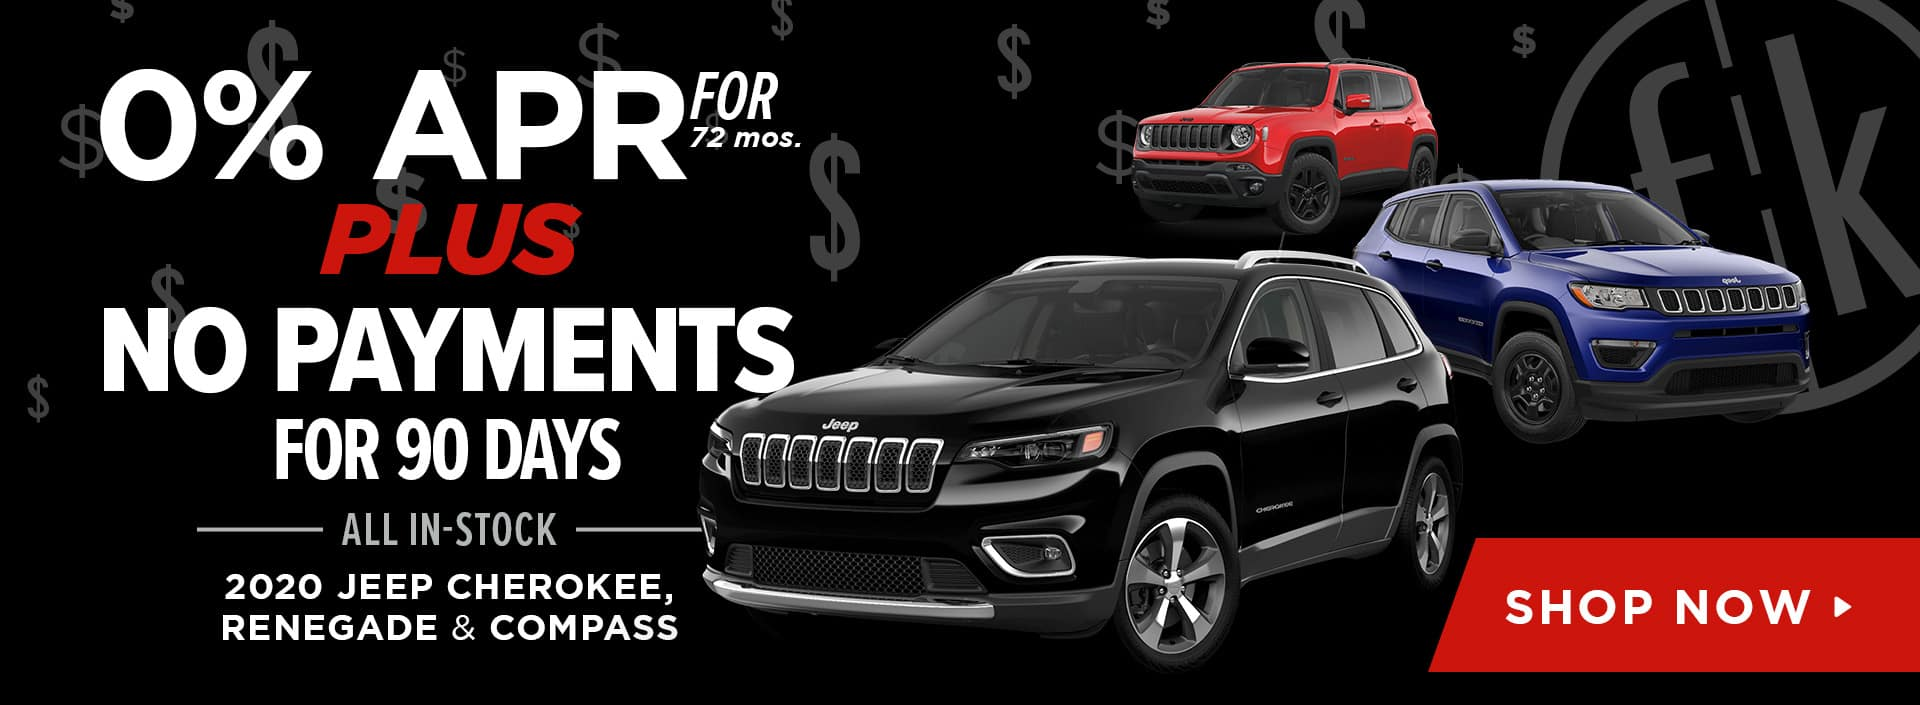 0% for 72 mos. PLUS No Payments for 90 Days All In-Stock 2020 Jeep Cherokee, Renegade & Compass